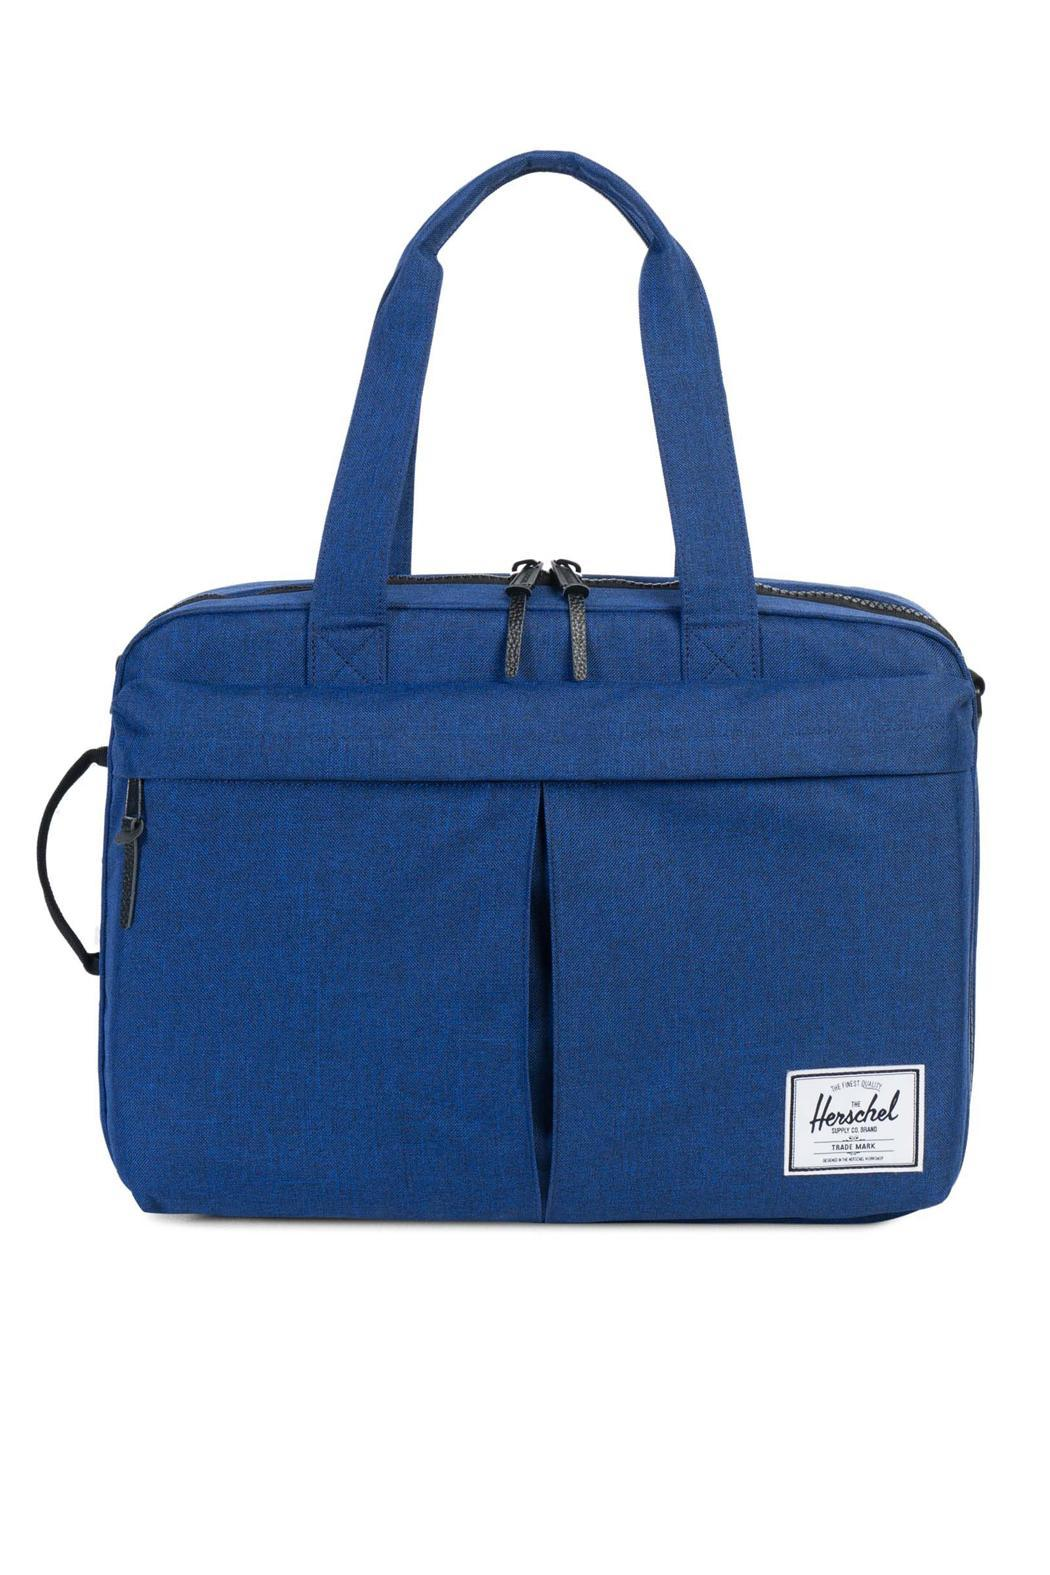 Herschel Supply Co. Herschel Bowen Duffle - Main Image